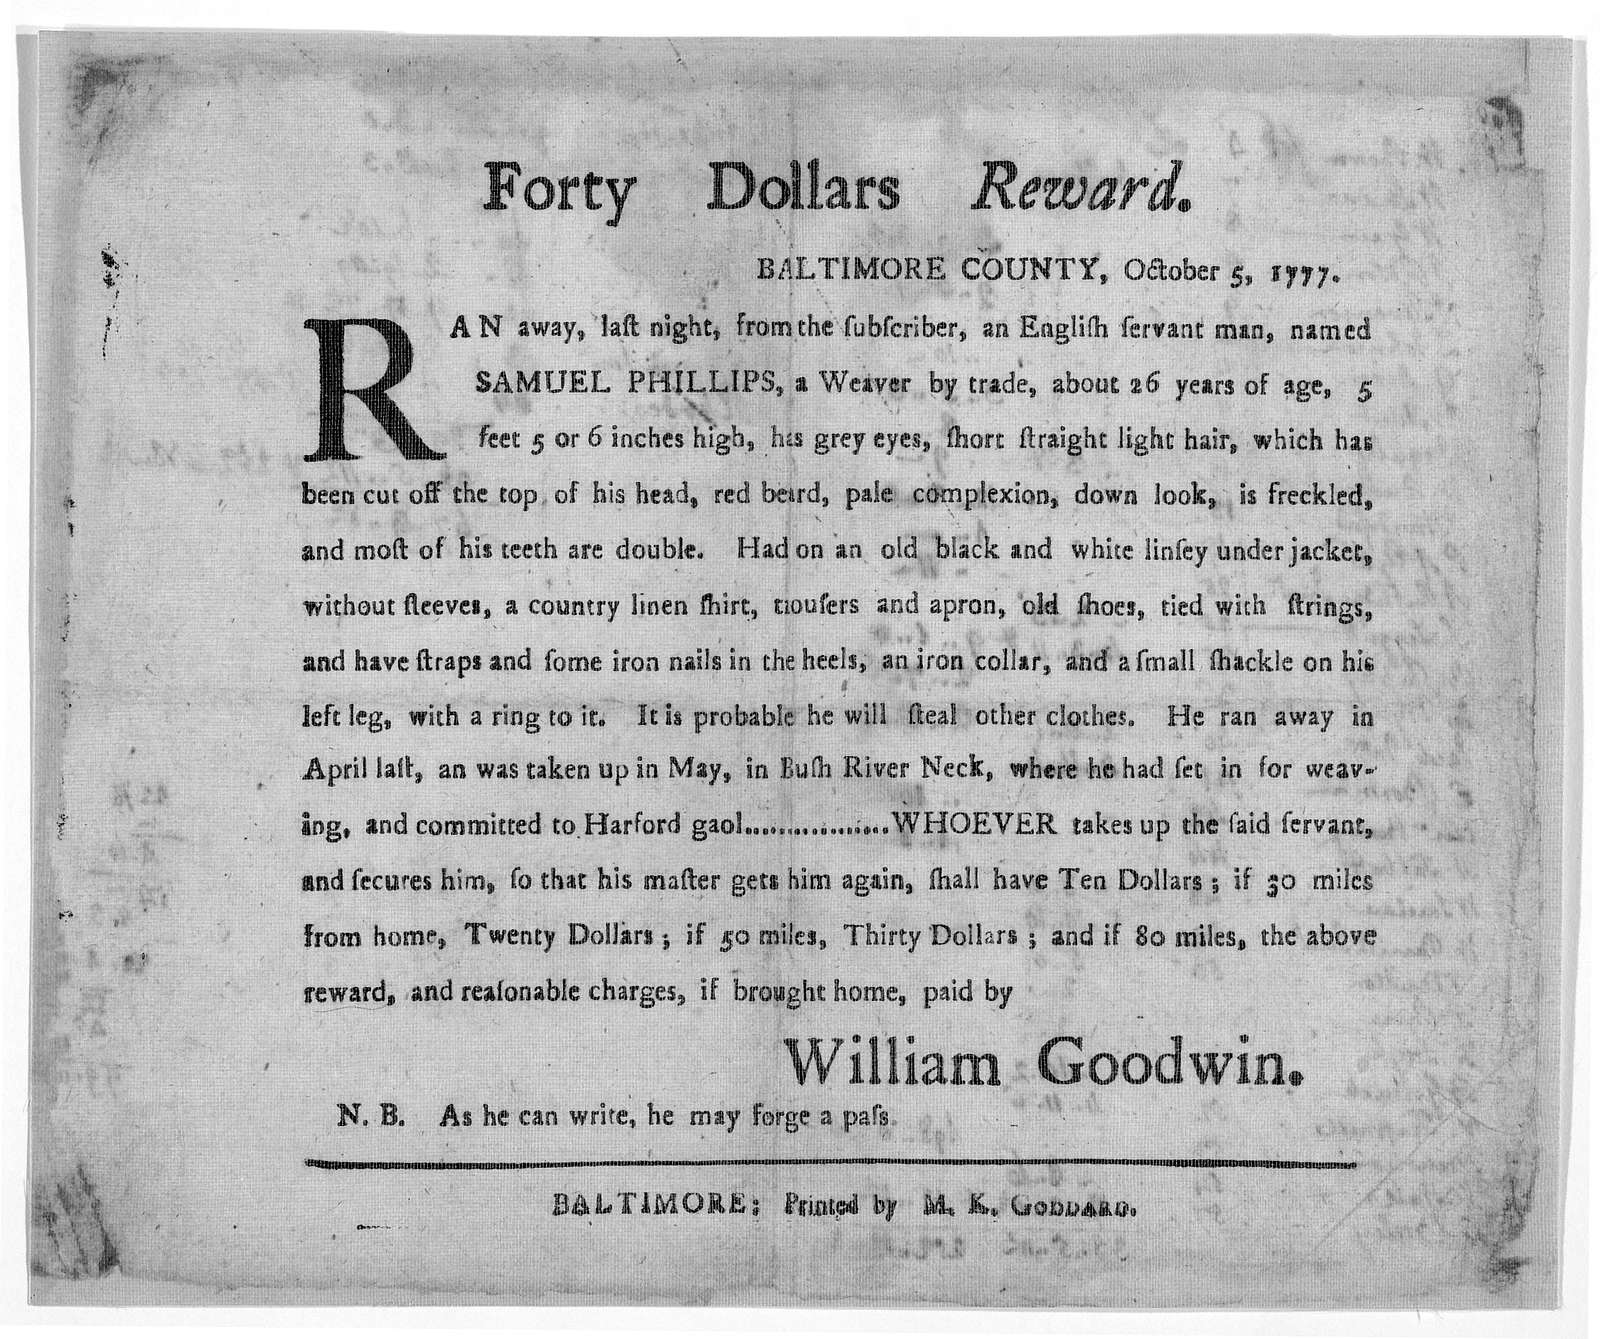 Forty dollars reward. Baltimore County, October 5, 1777. Ran way last night, from the subscriber, an English servant man, named Samuel Phillips, a weaver by trade ... [Signed] William Goodwin. [blank] Baltimore: Printed by M. K. Goddard [1777].